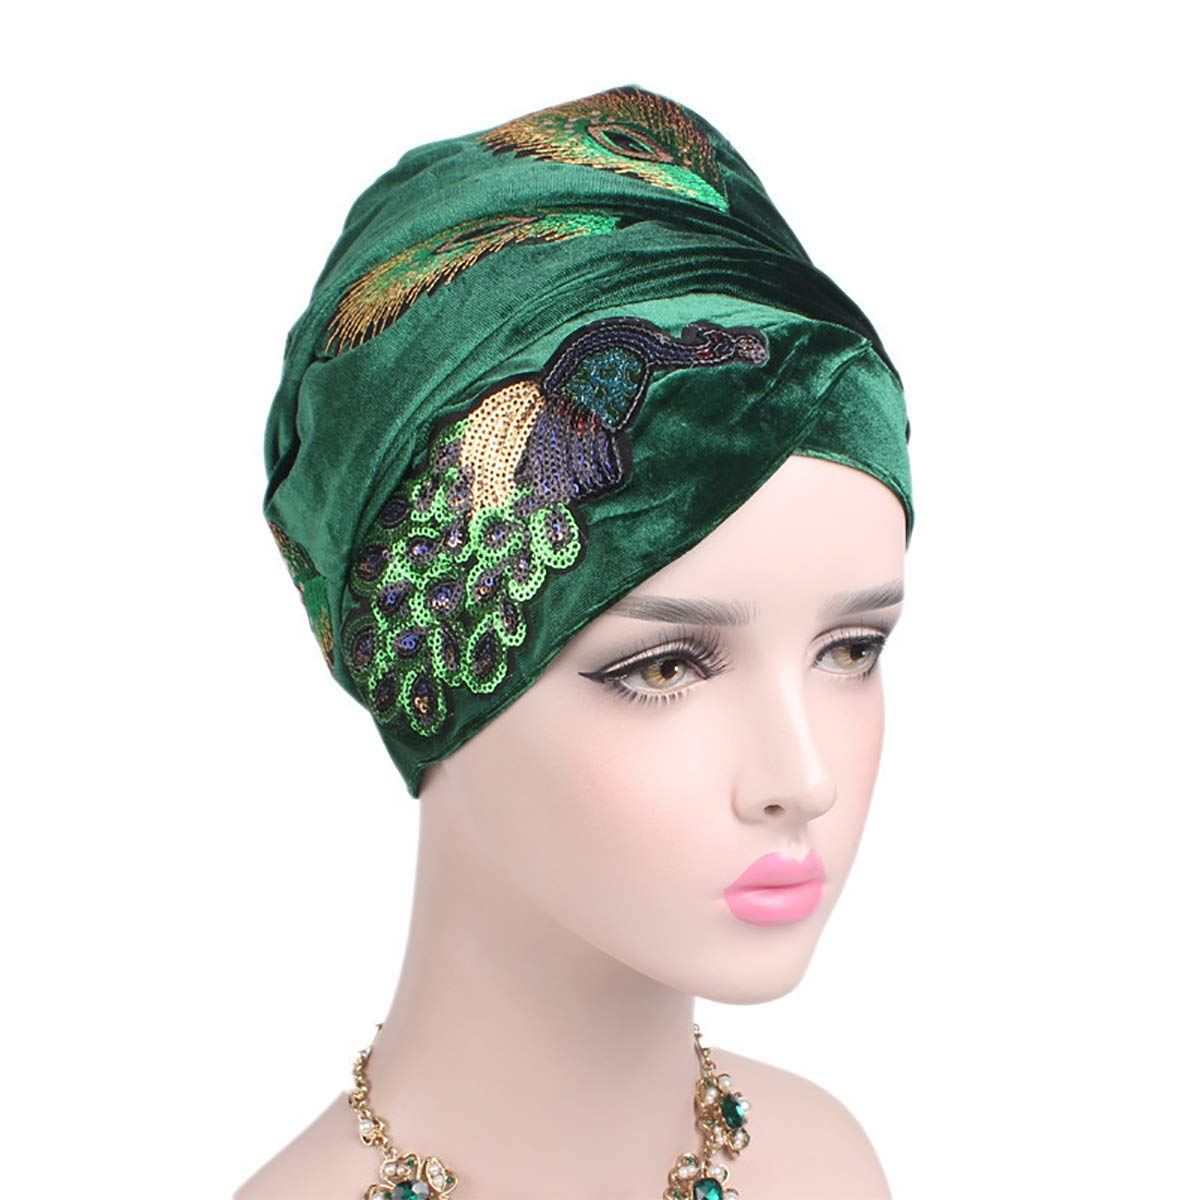 1920s Style Hats RARITYUS Womens Turban Hat Chemo Cap Velvet Peacock Headwear Sequins Muslim Headwrap Scarf Green $18.99 AT vintagedancer.com